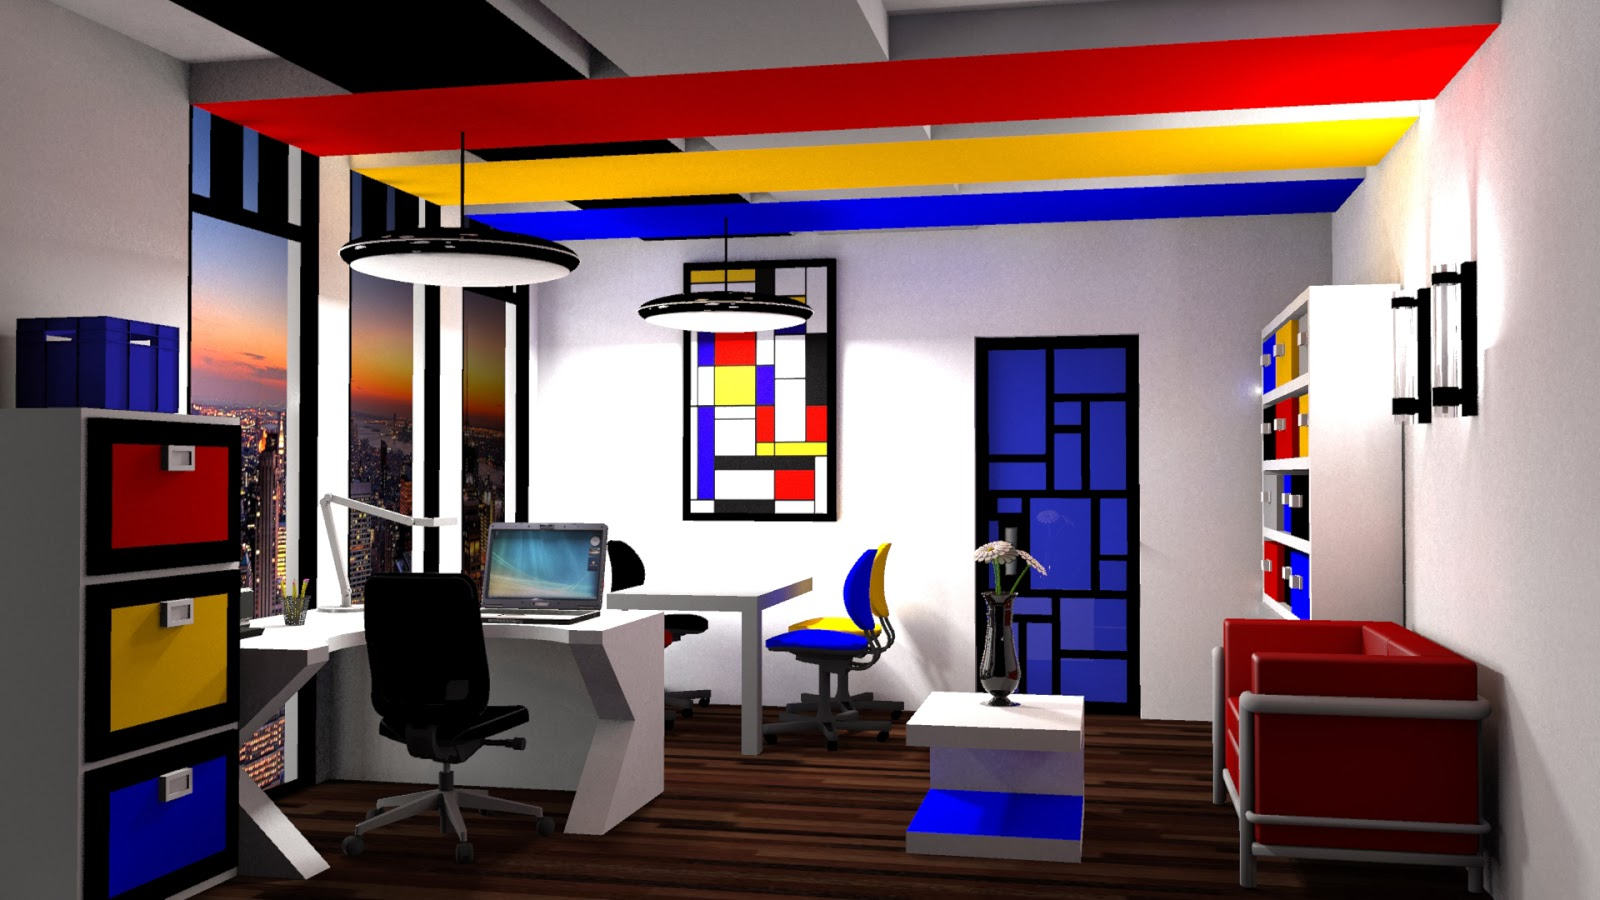 Color Scheme This Time Which Includes Red Yellow Blue White Black And Gray I Was Very Excited To Render My Sketchup Views For Mini Project